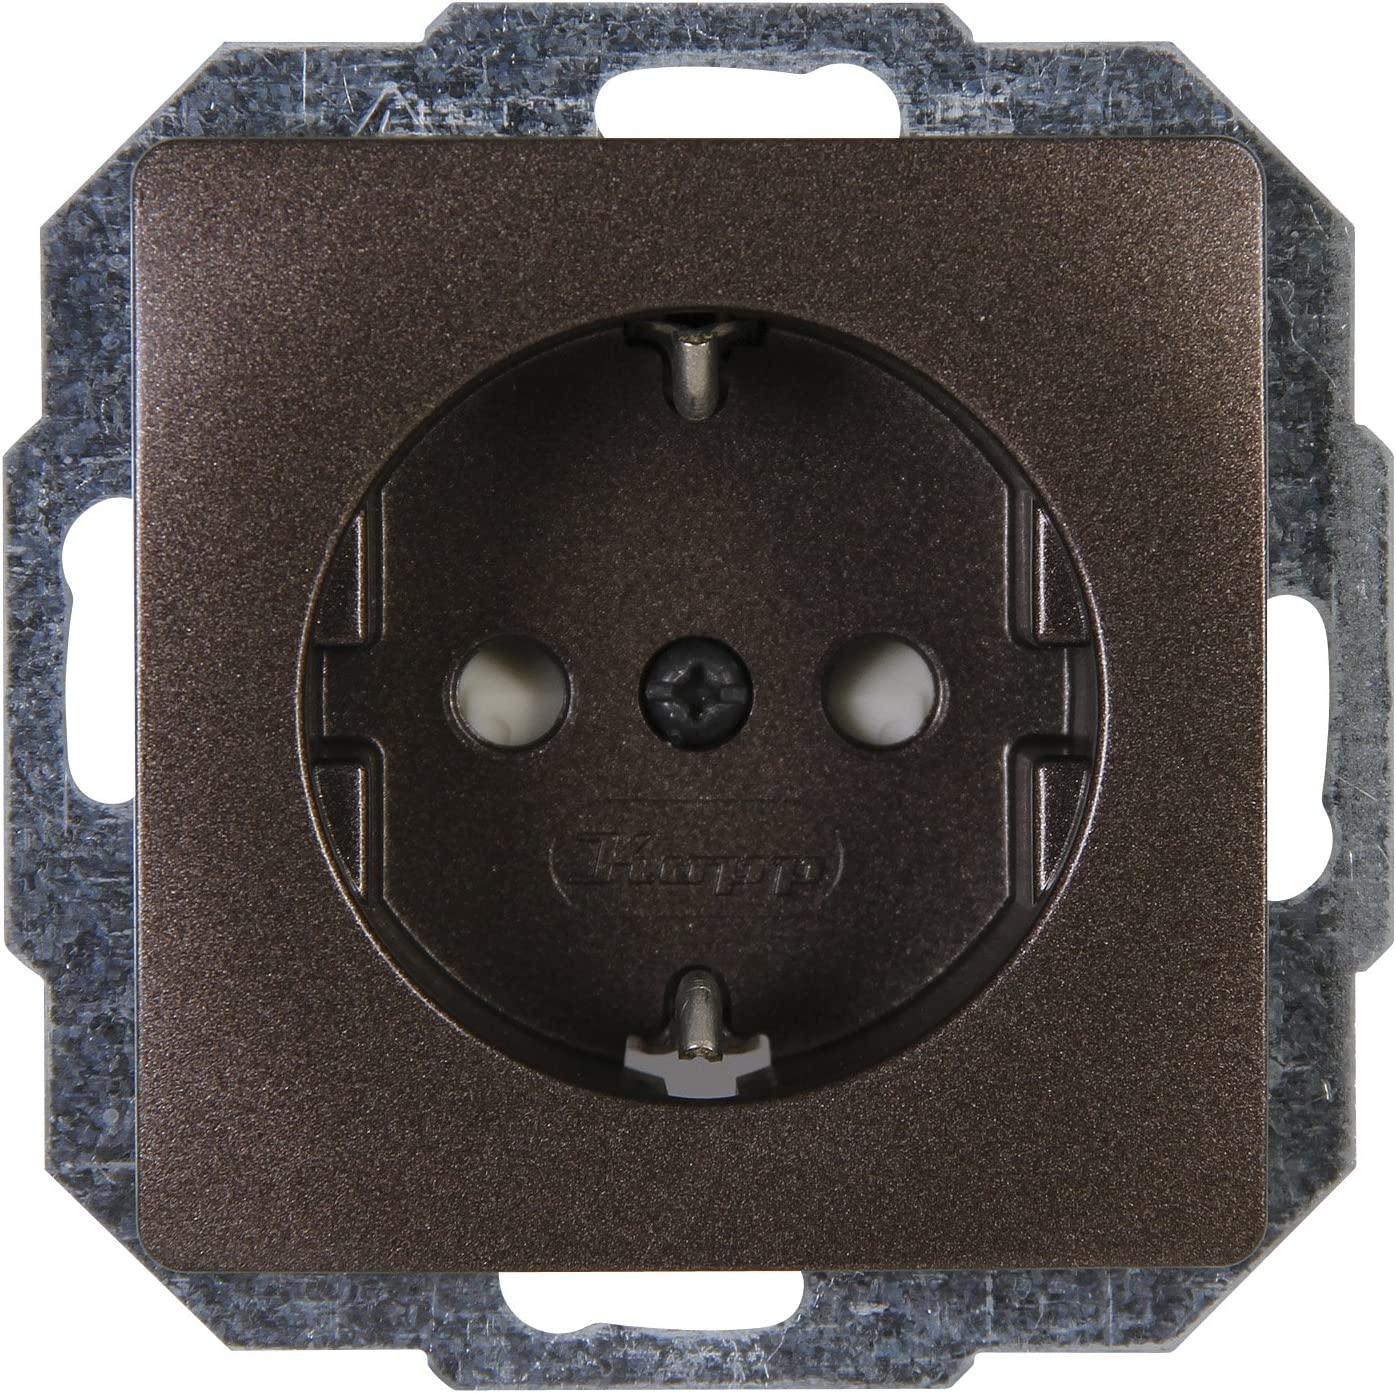 OFFicial site Kopp Plug Socket Price reduction Protective Cover 9206260 with Protection Touch